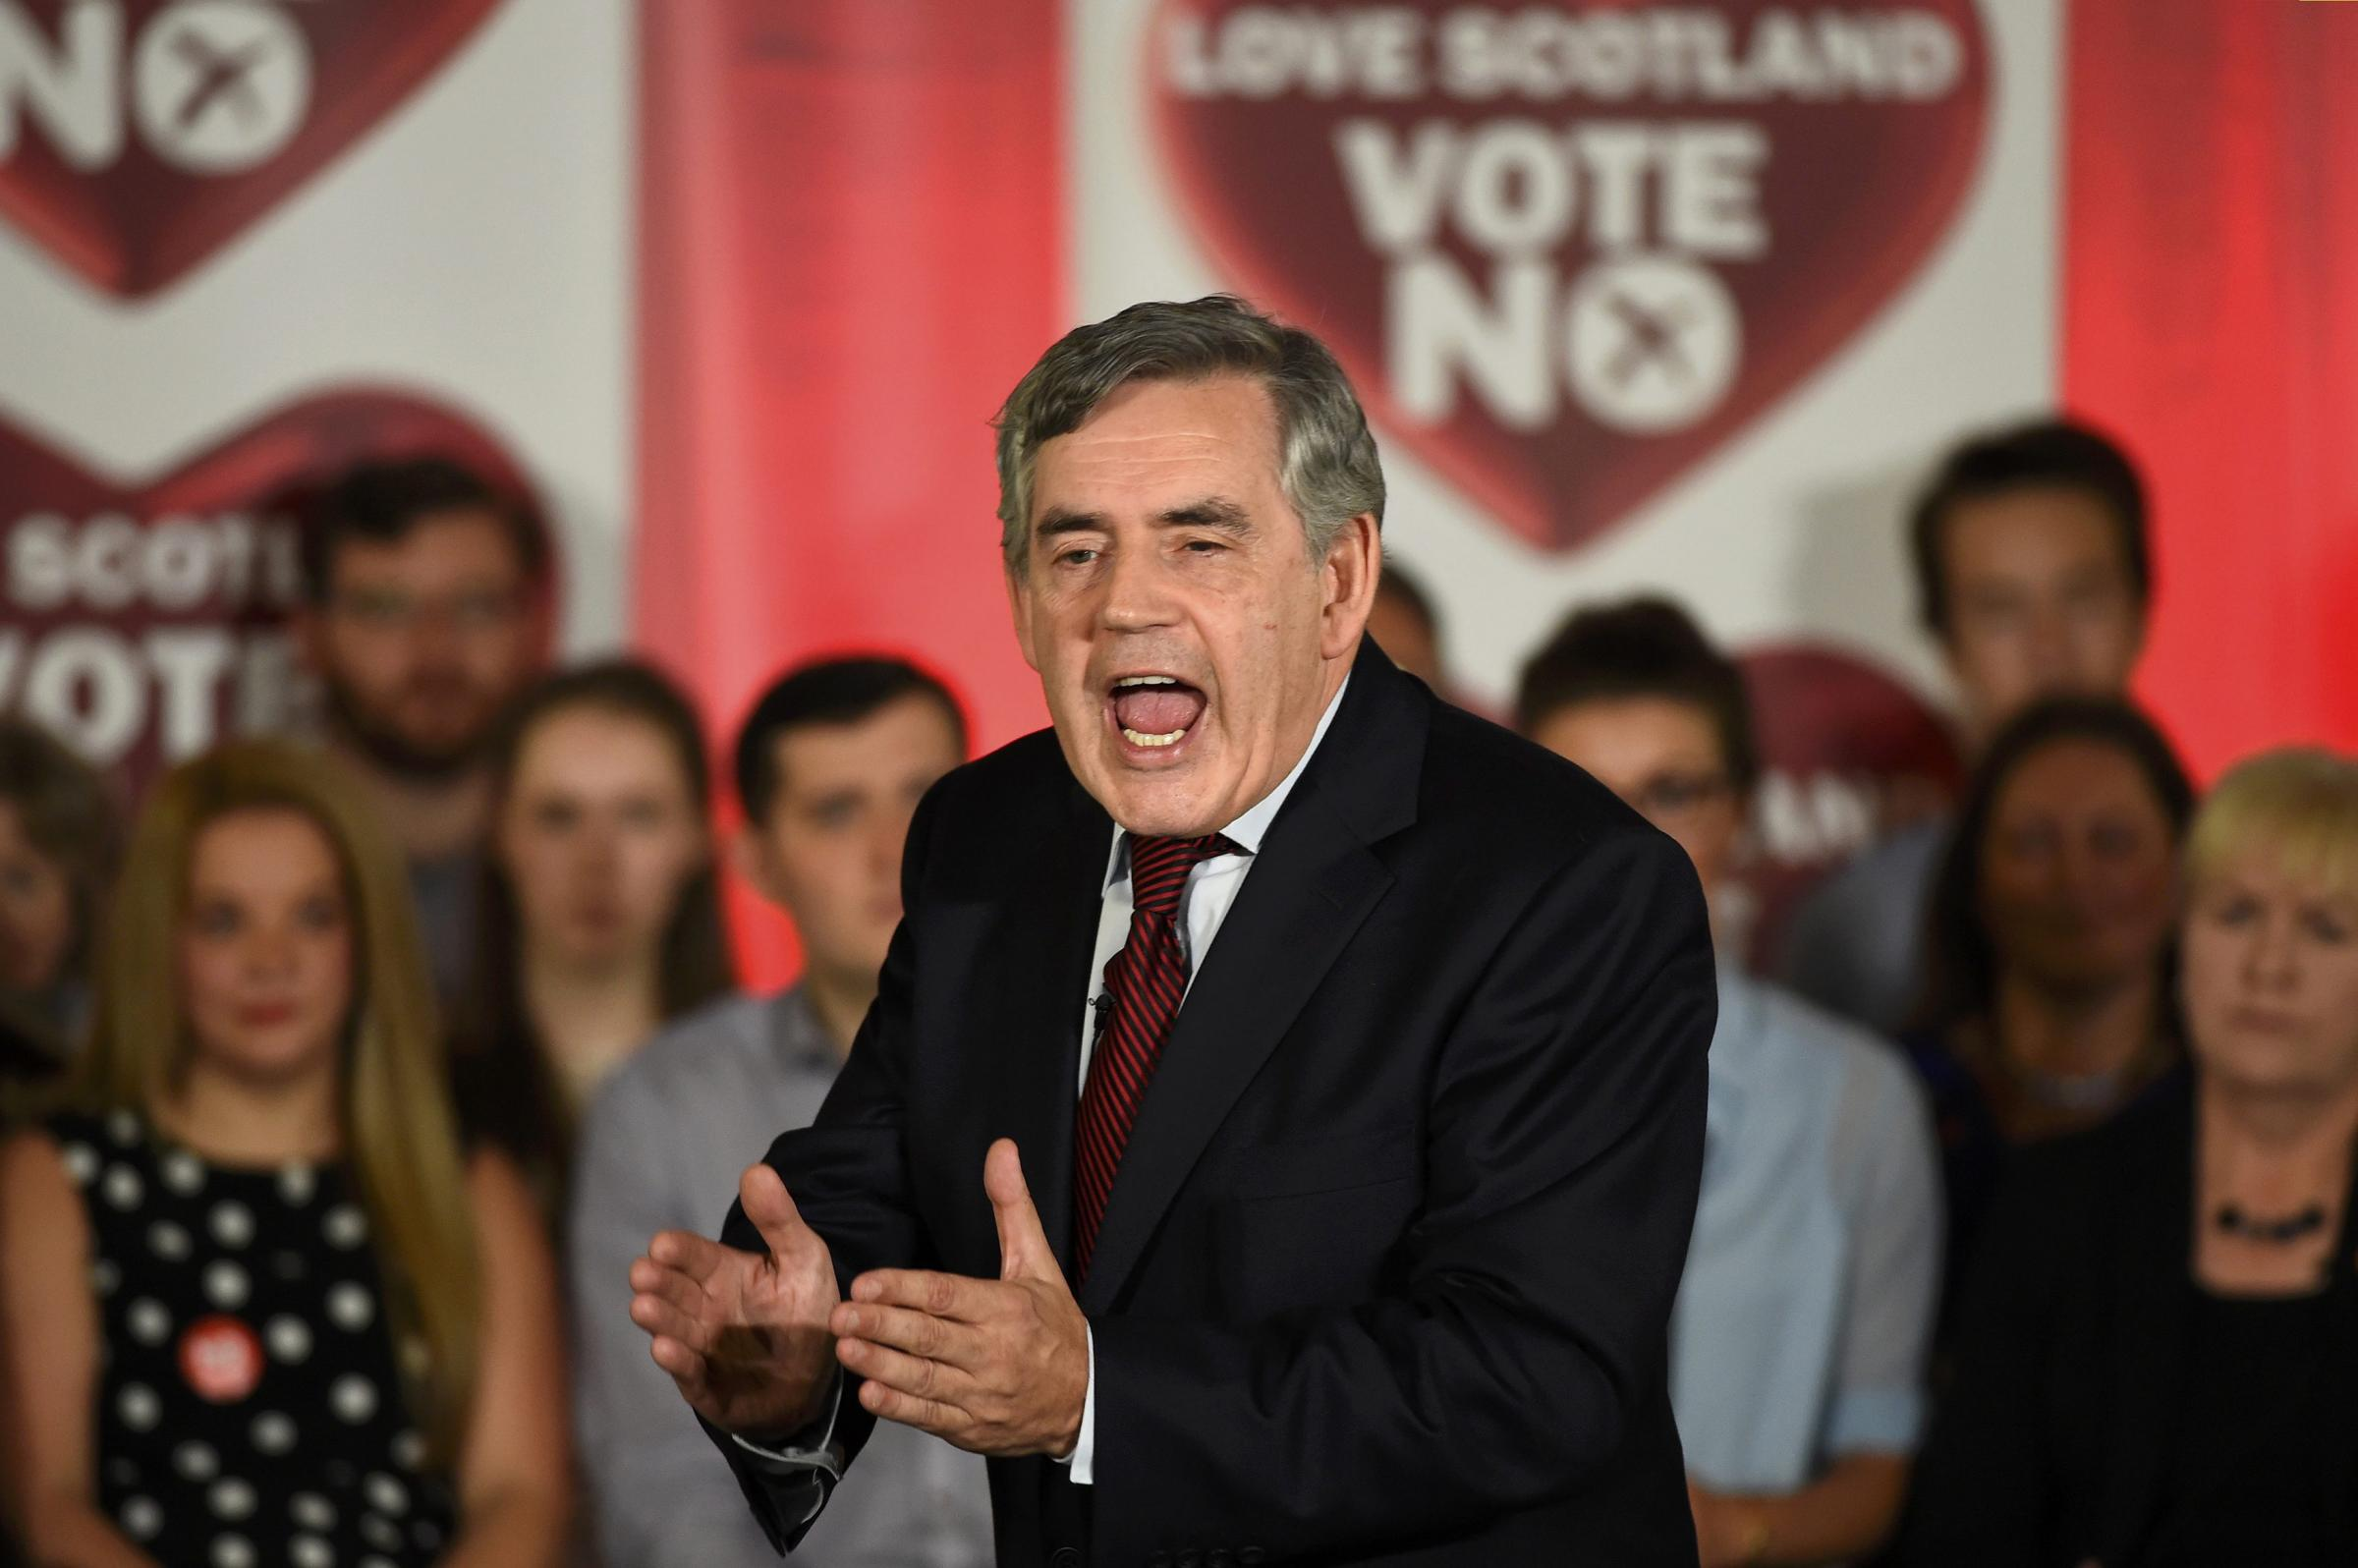 Kevin McKenna: Gordon Brown has become a major cause of the division he purports to revile